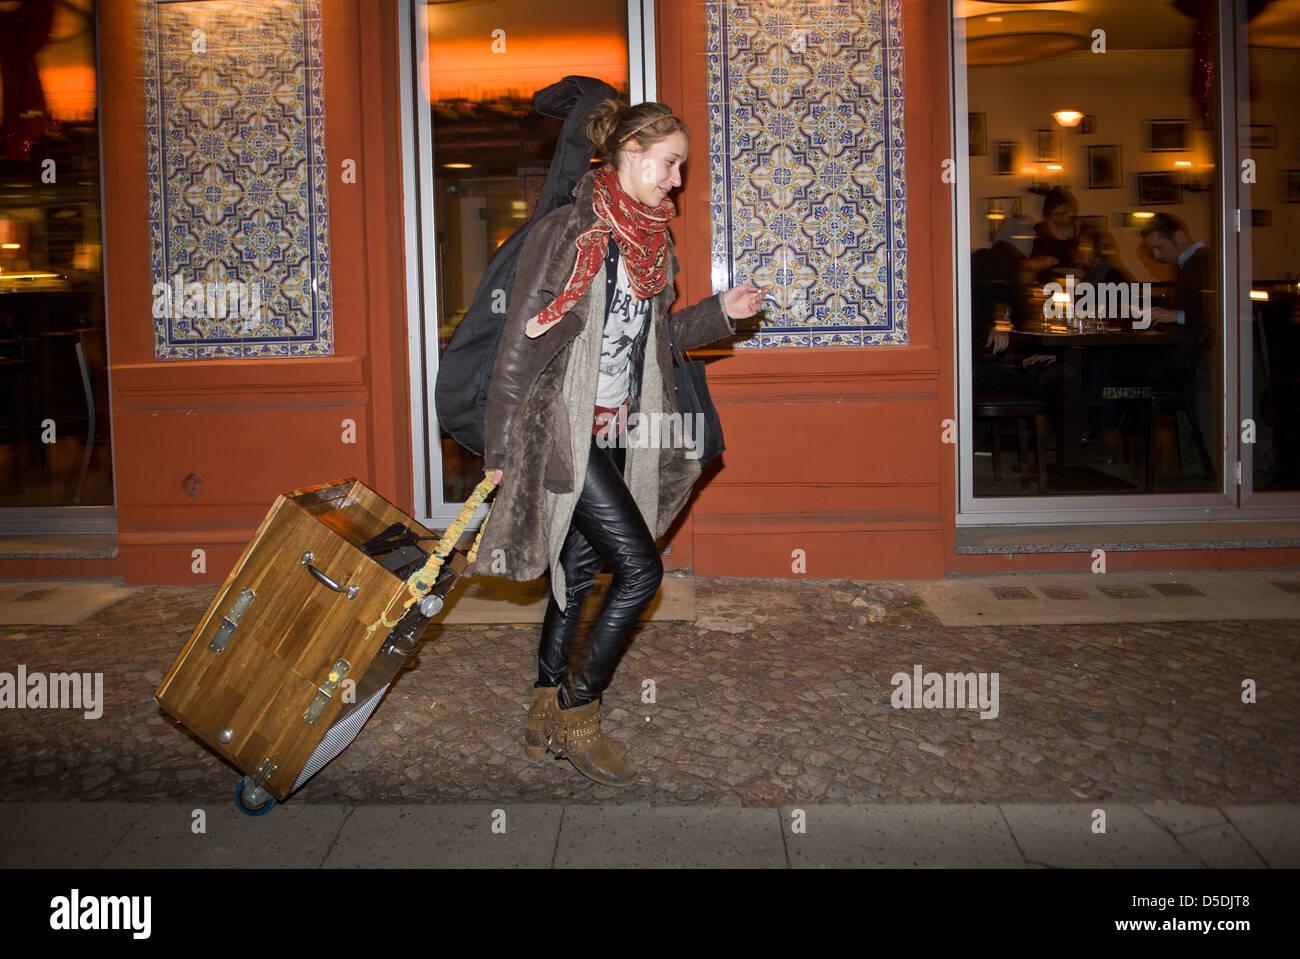 Berlin, Germany, Elen Wendt, street musician and participant in The Voice of Germany - Stock Image